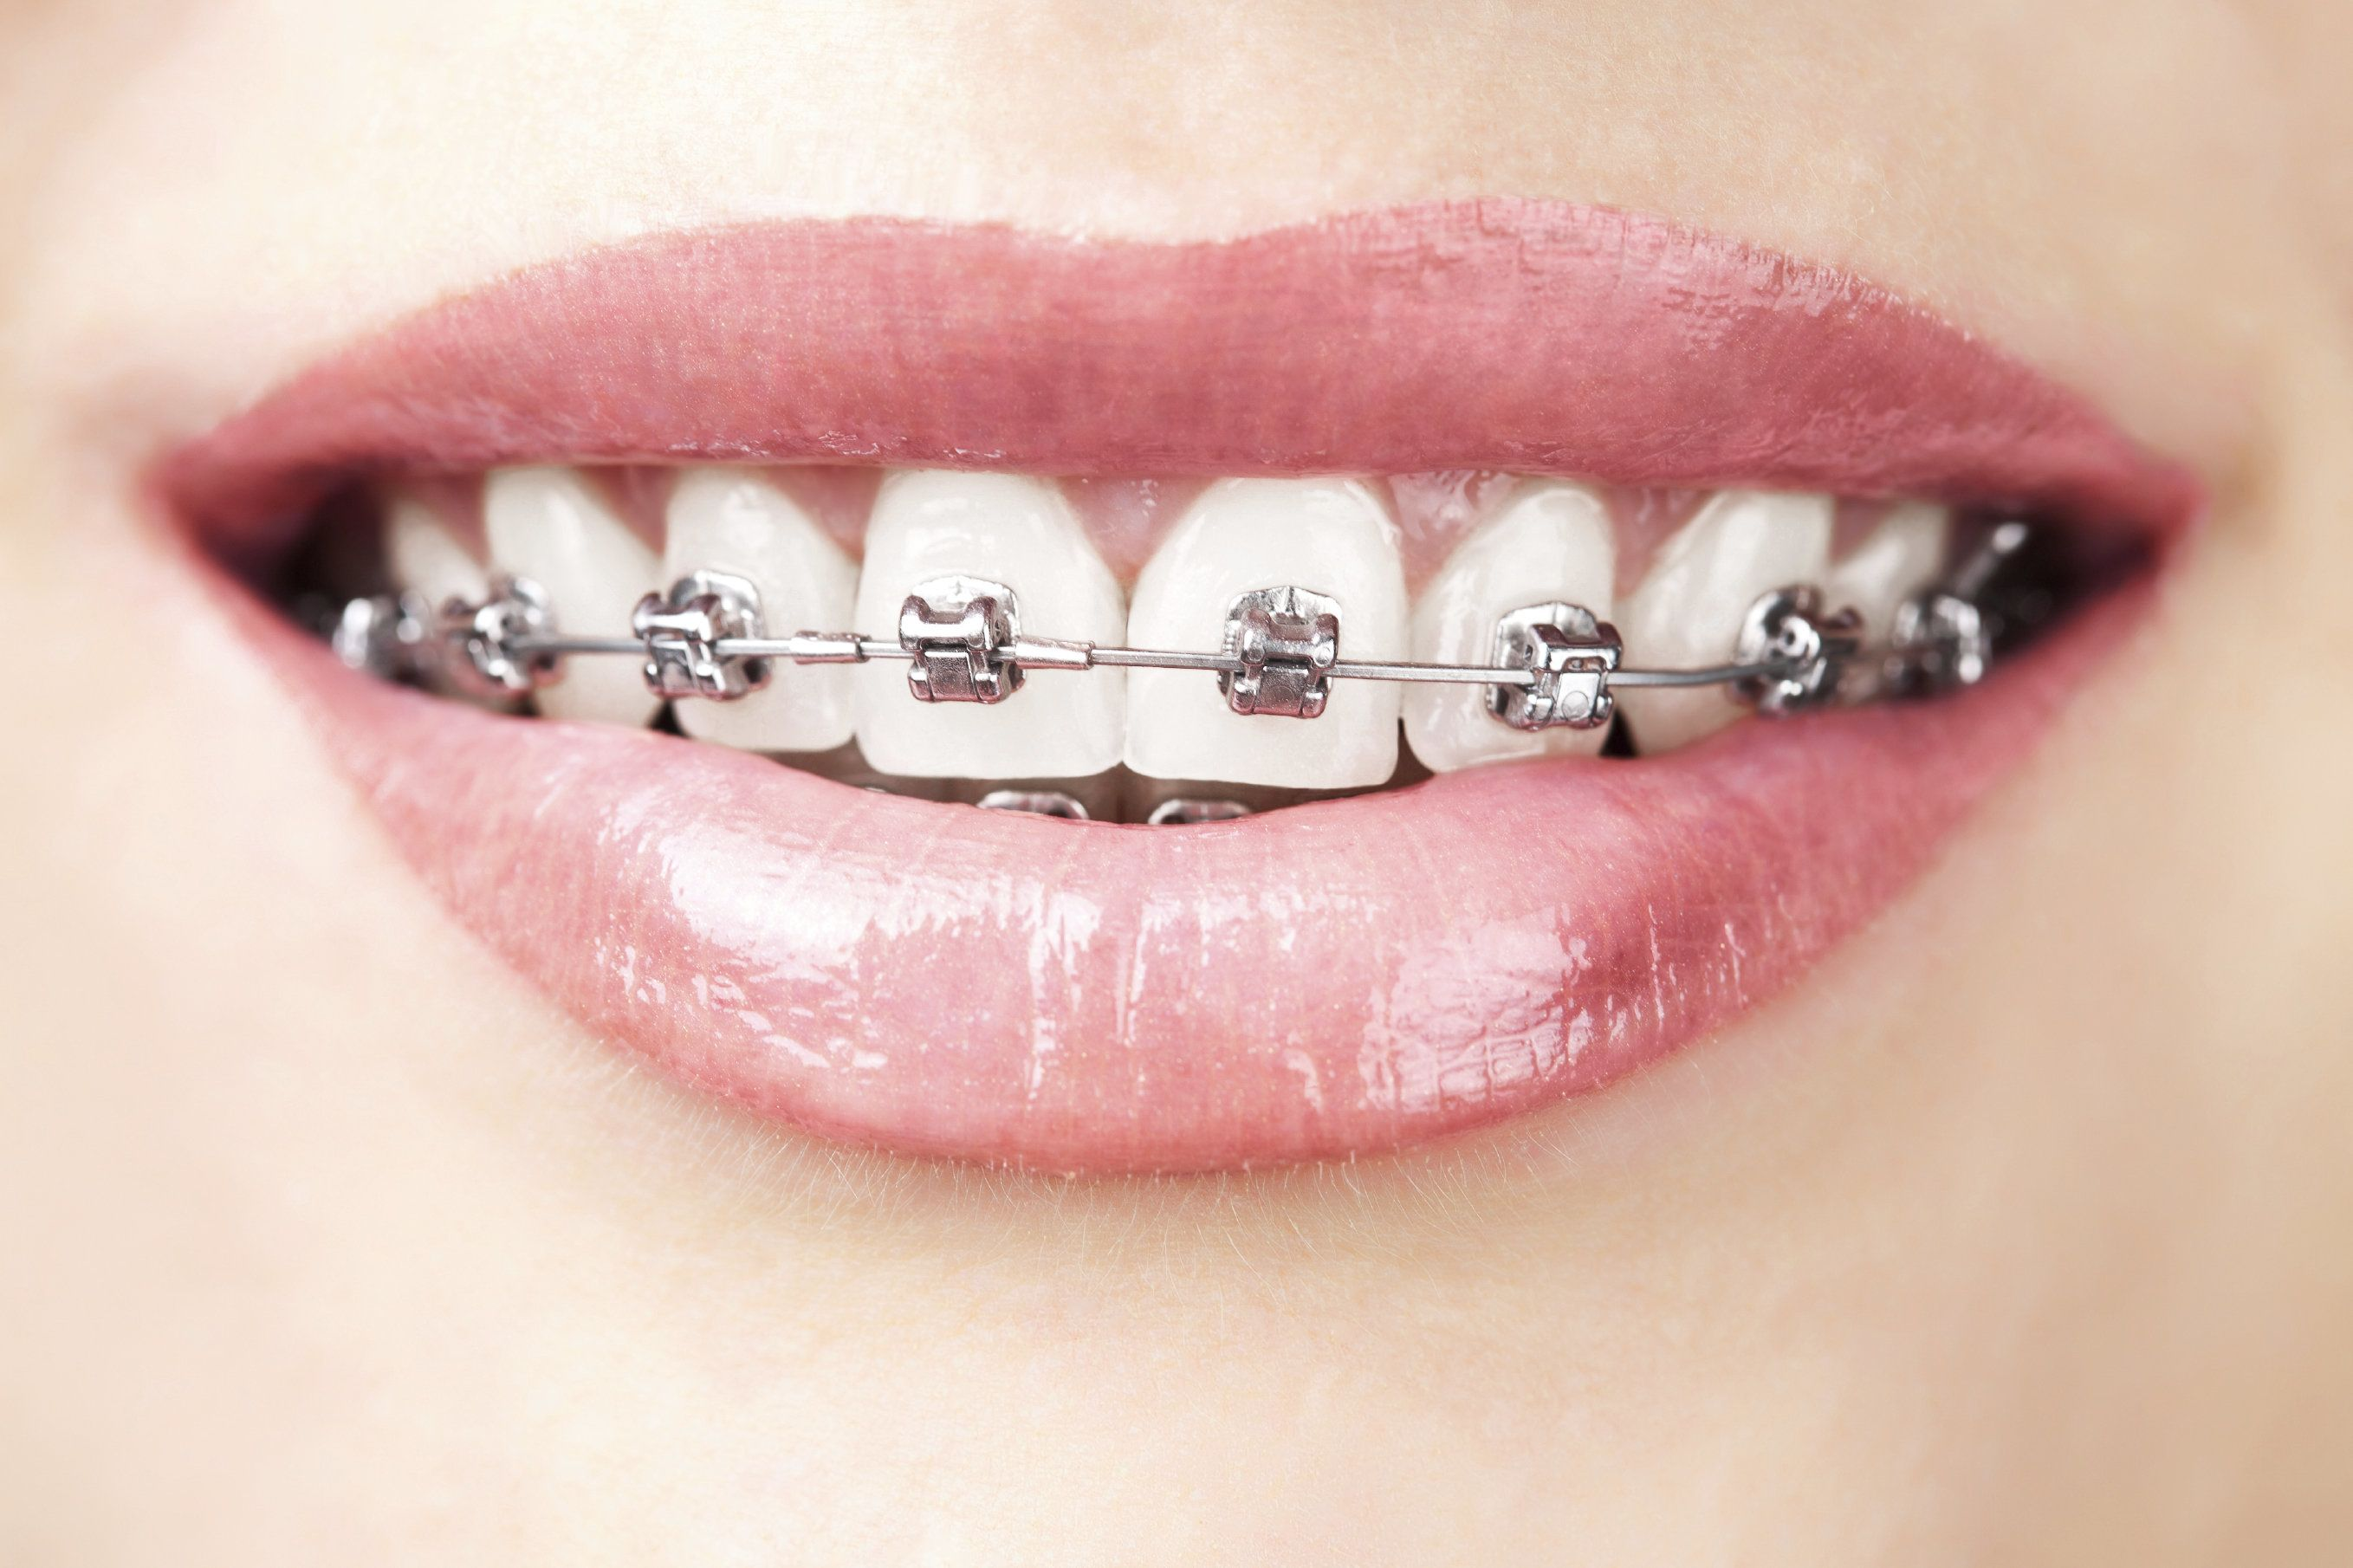 Woman wearing traditional braces.